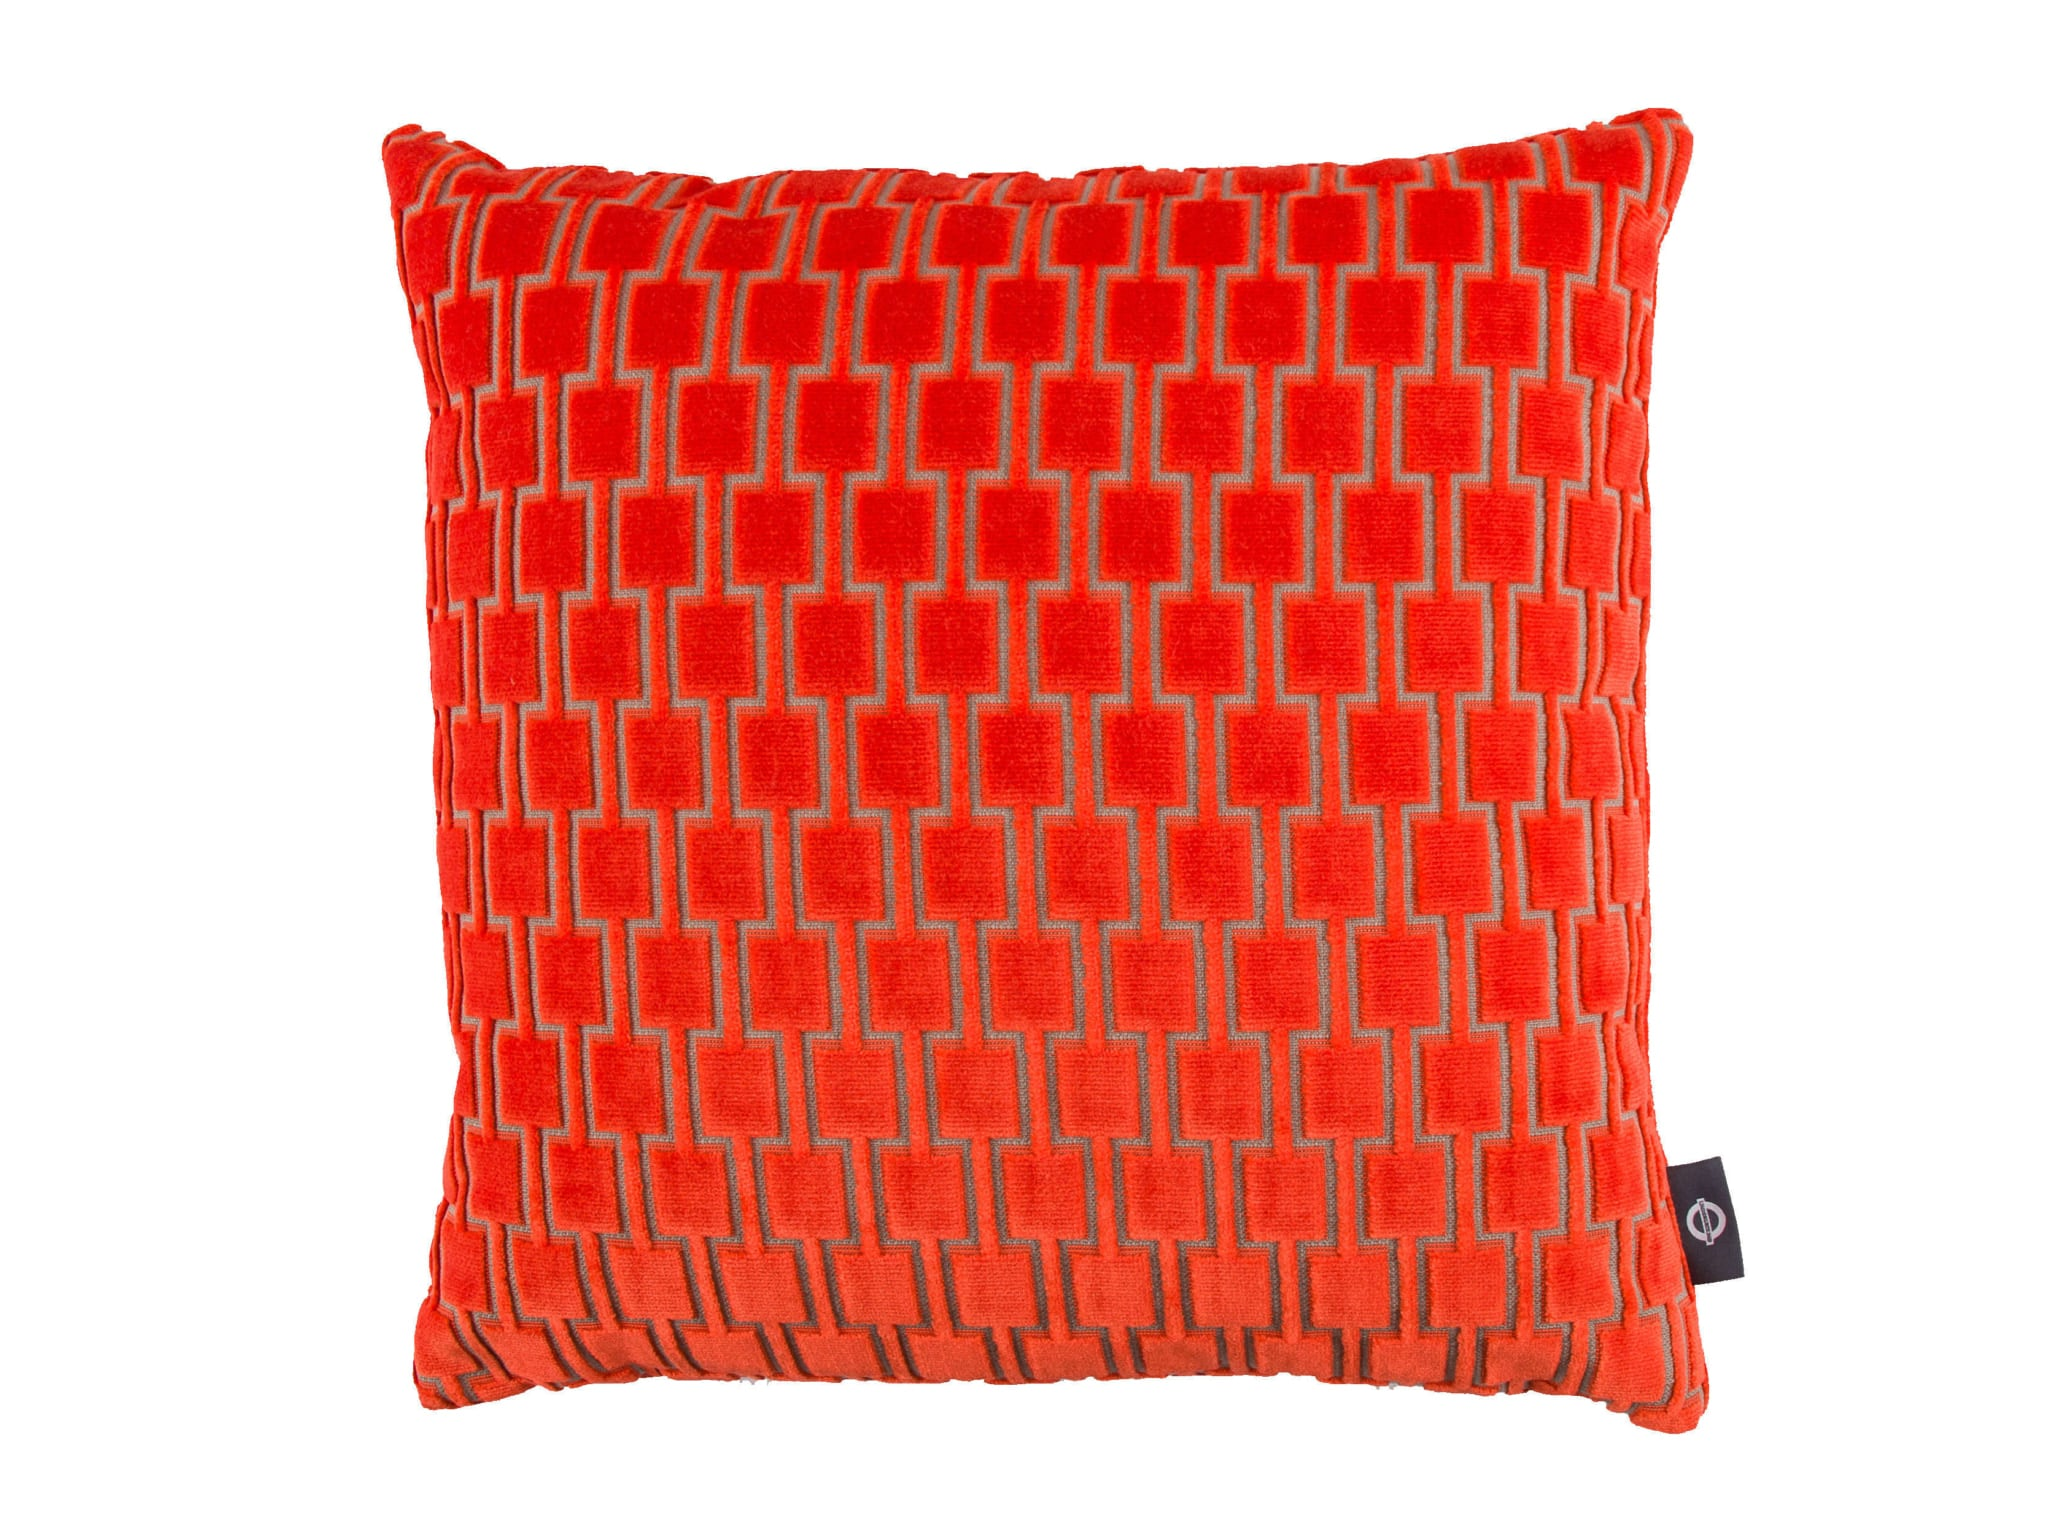 【海外取寄品】The Bakerloo クッション Neon Orange by kirkbydesign 43×43cm 中材付